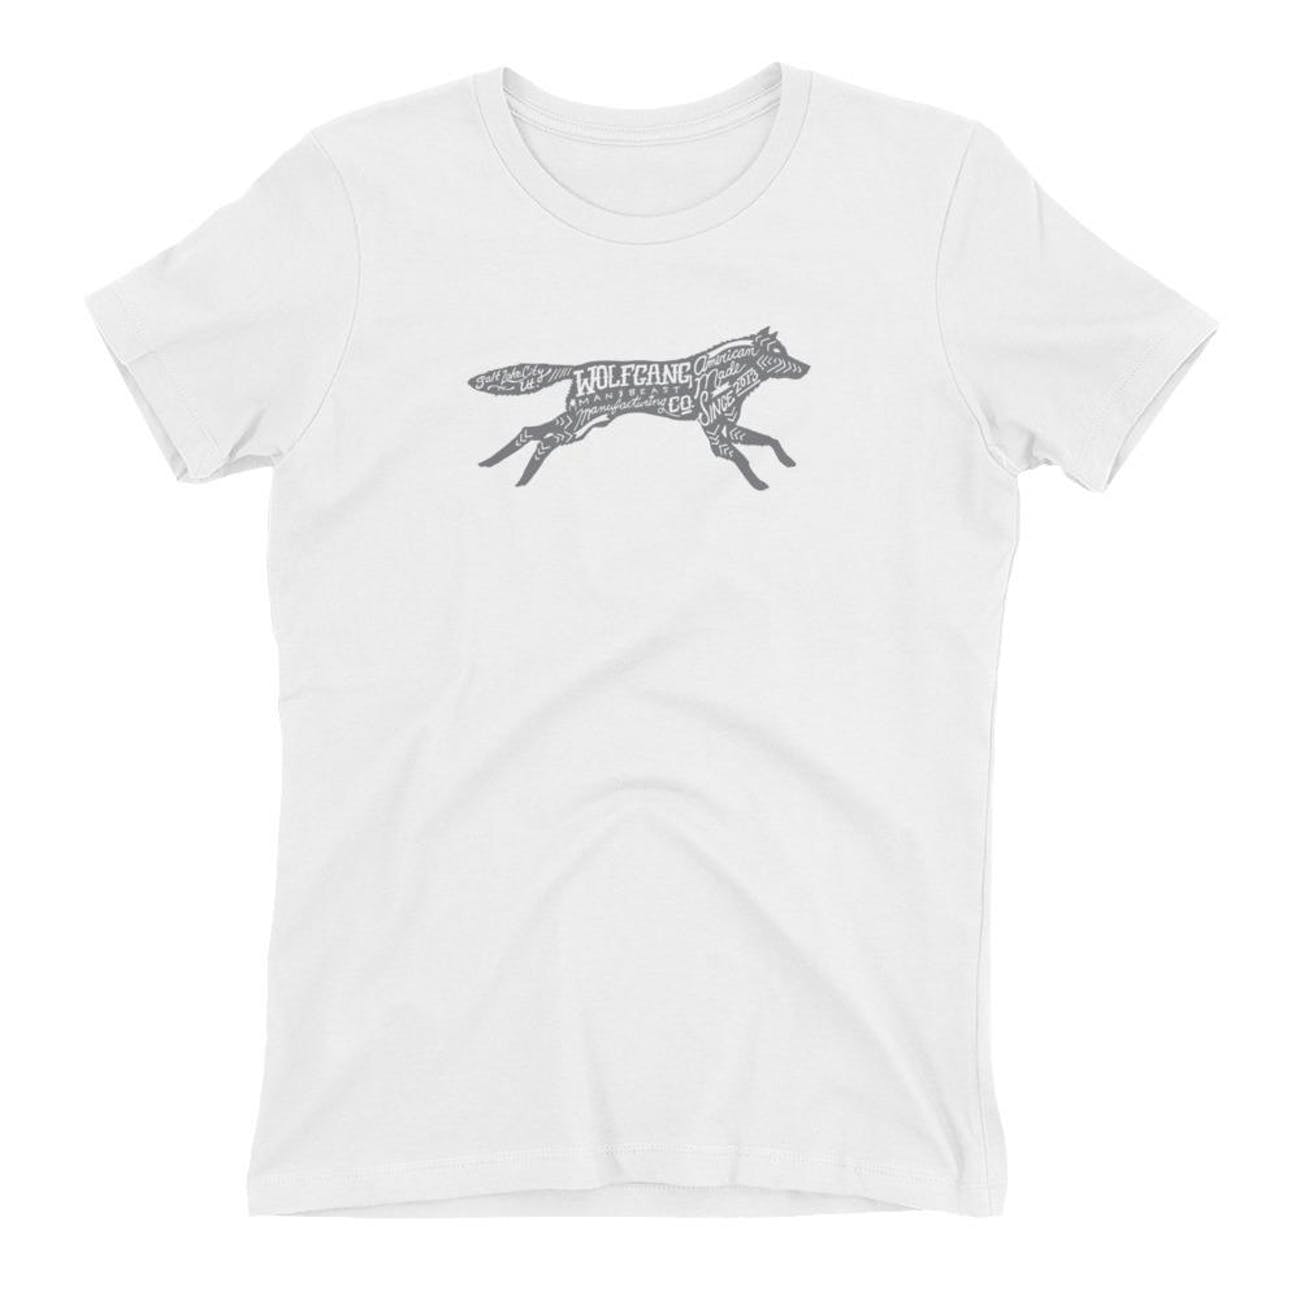 A white T-shirt with a wolf on it.